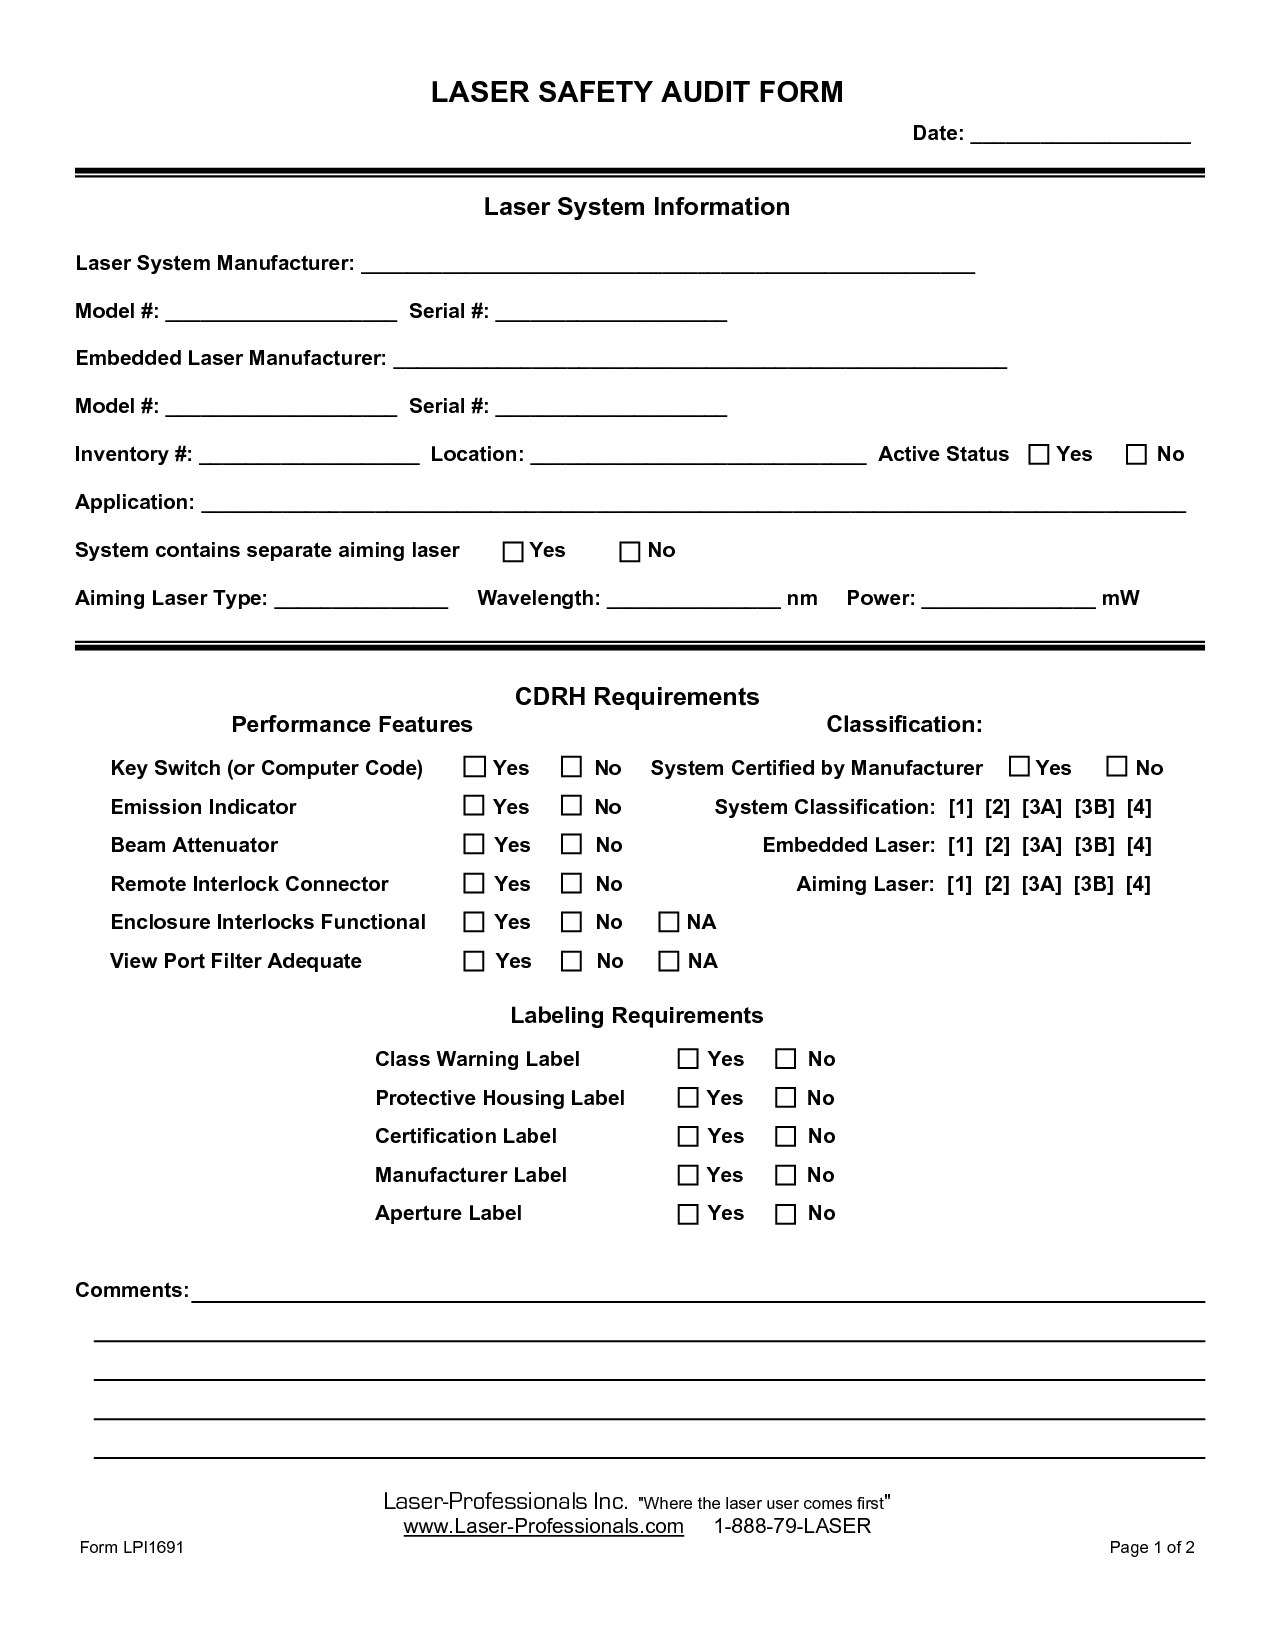 Safety Audit Form - A safety audit form is filled up by employees ...